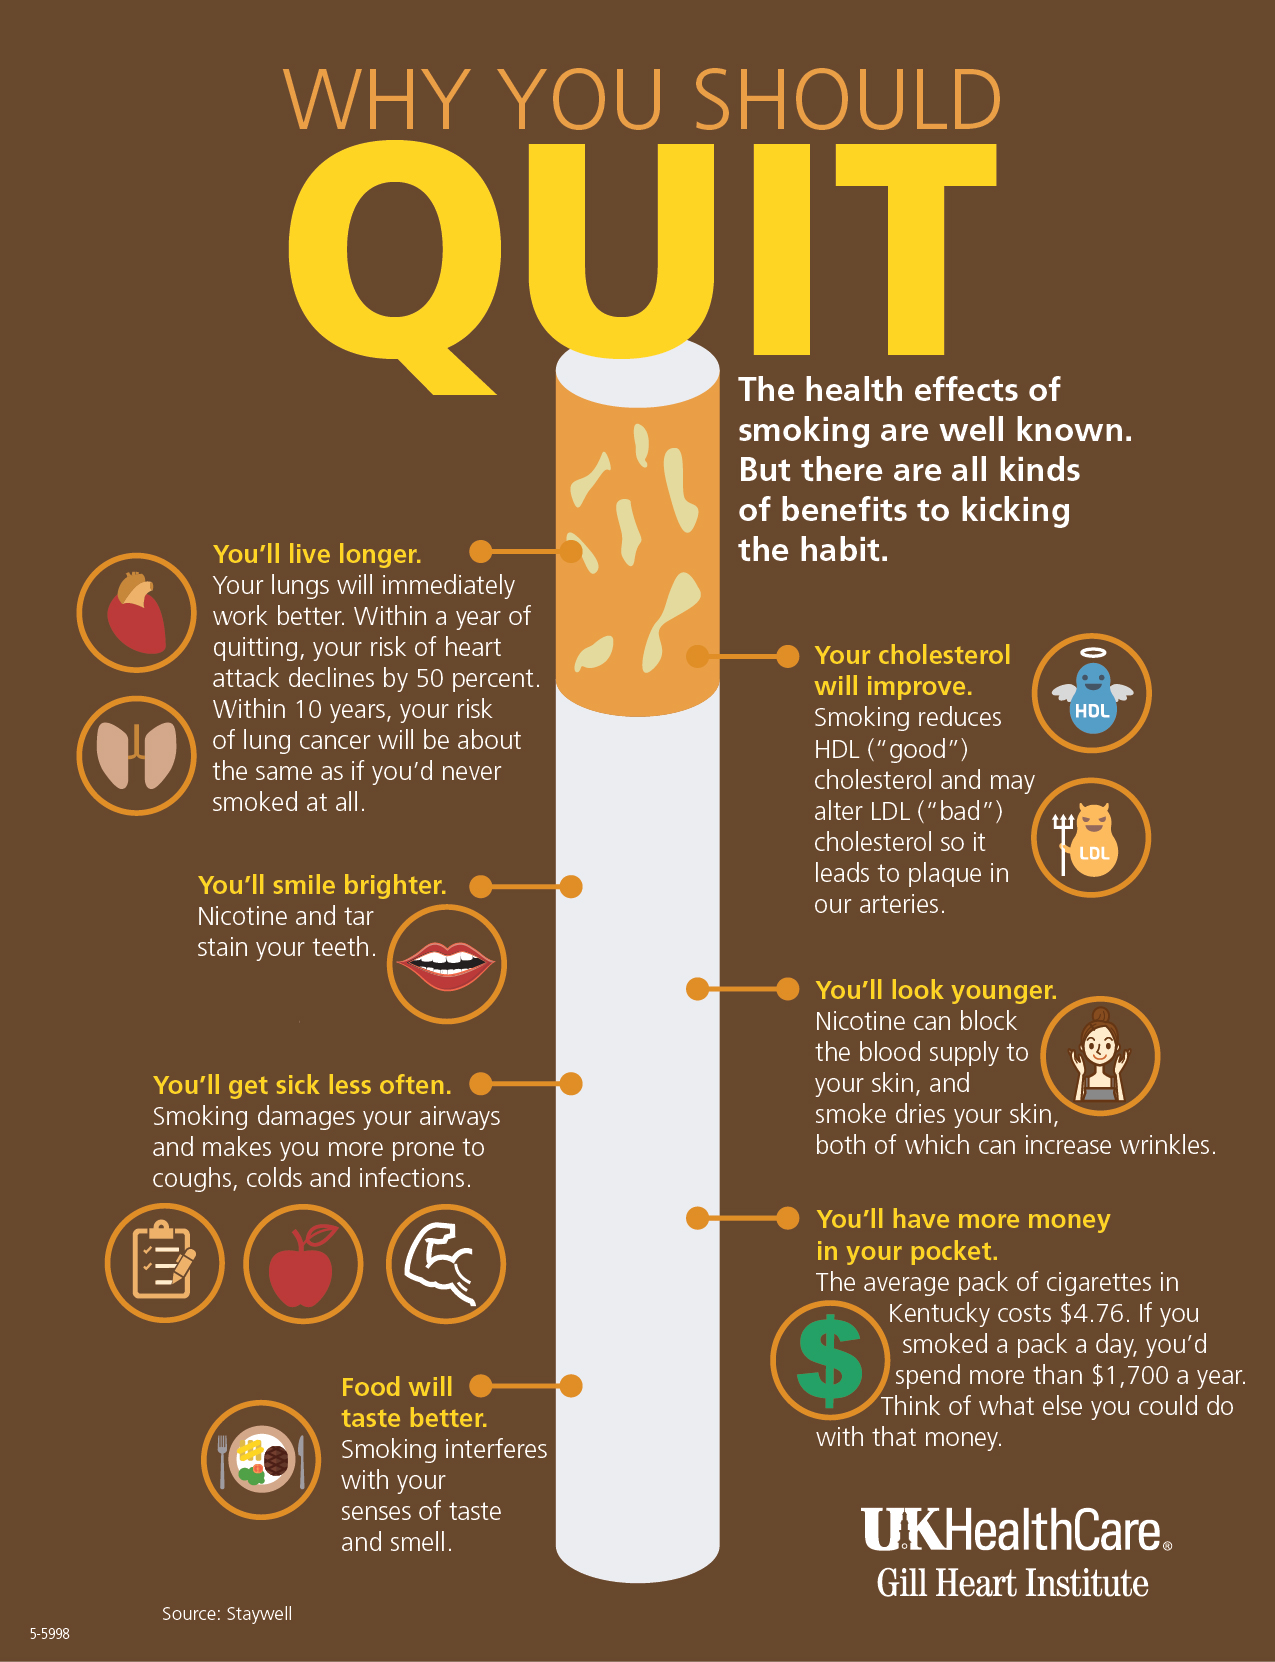 Why You Should Quit Smoking Uk Healthcare